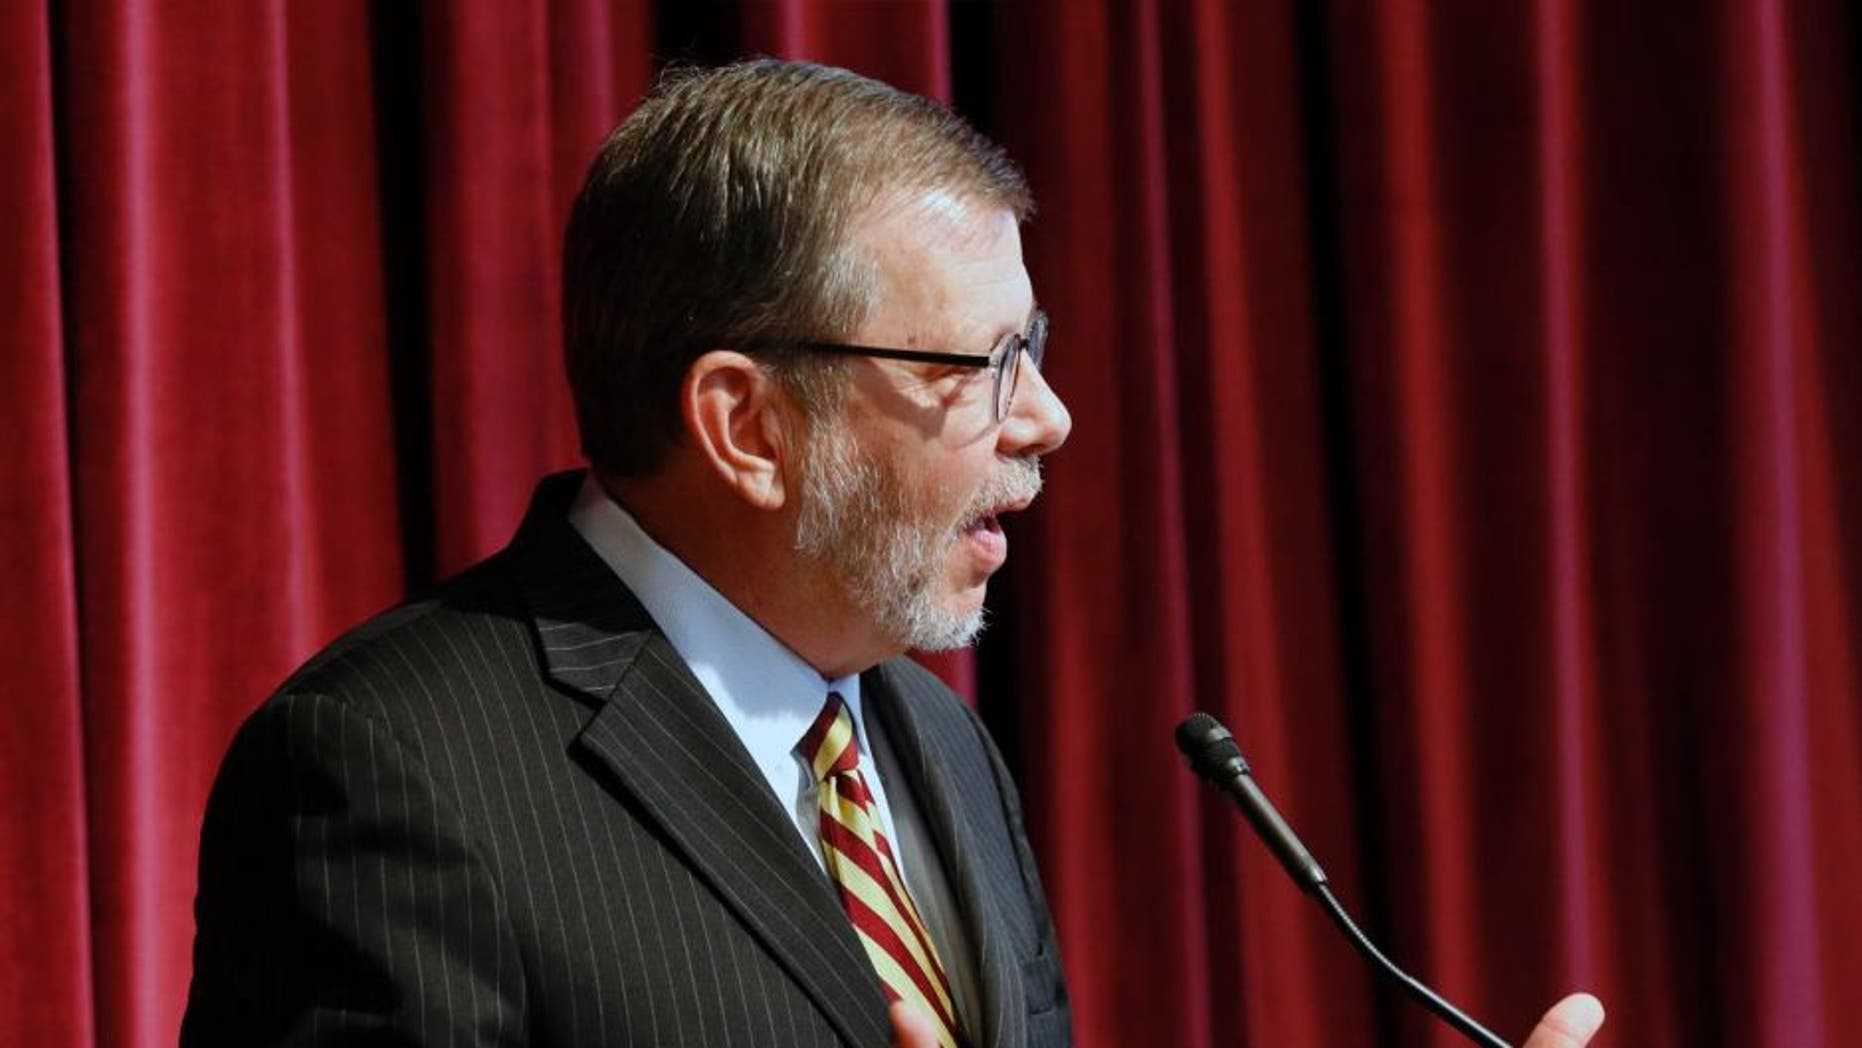 University of Minnesota President Eric Kaler addresses questions after he announced the resignation of athletic director Norwood Teague, Friday, Aug. 7, 2015 in Minneapolis.